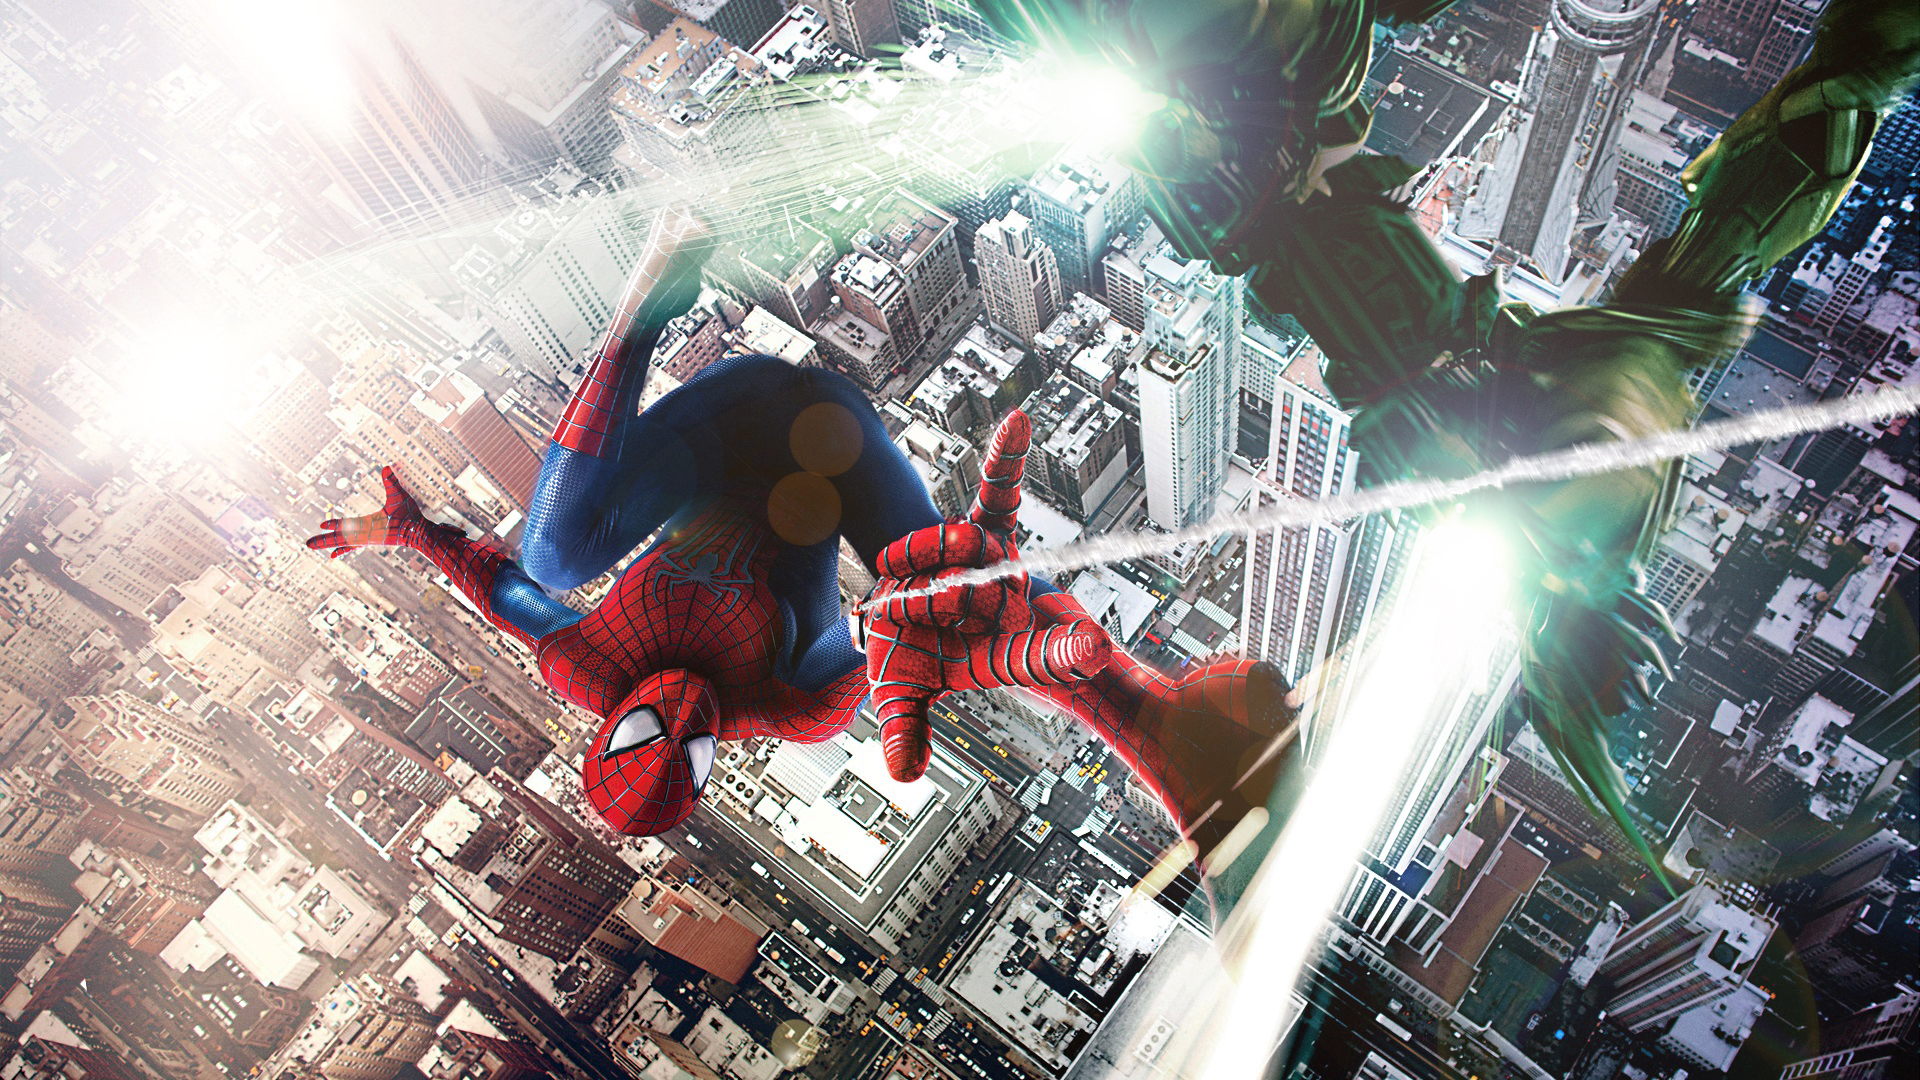 DeviantArt More Like The Amazing Spider Man 2 Movie Poster